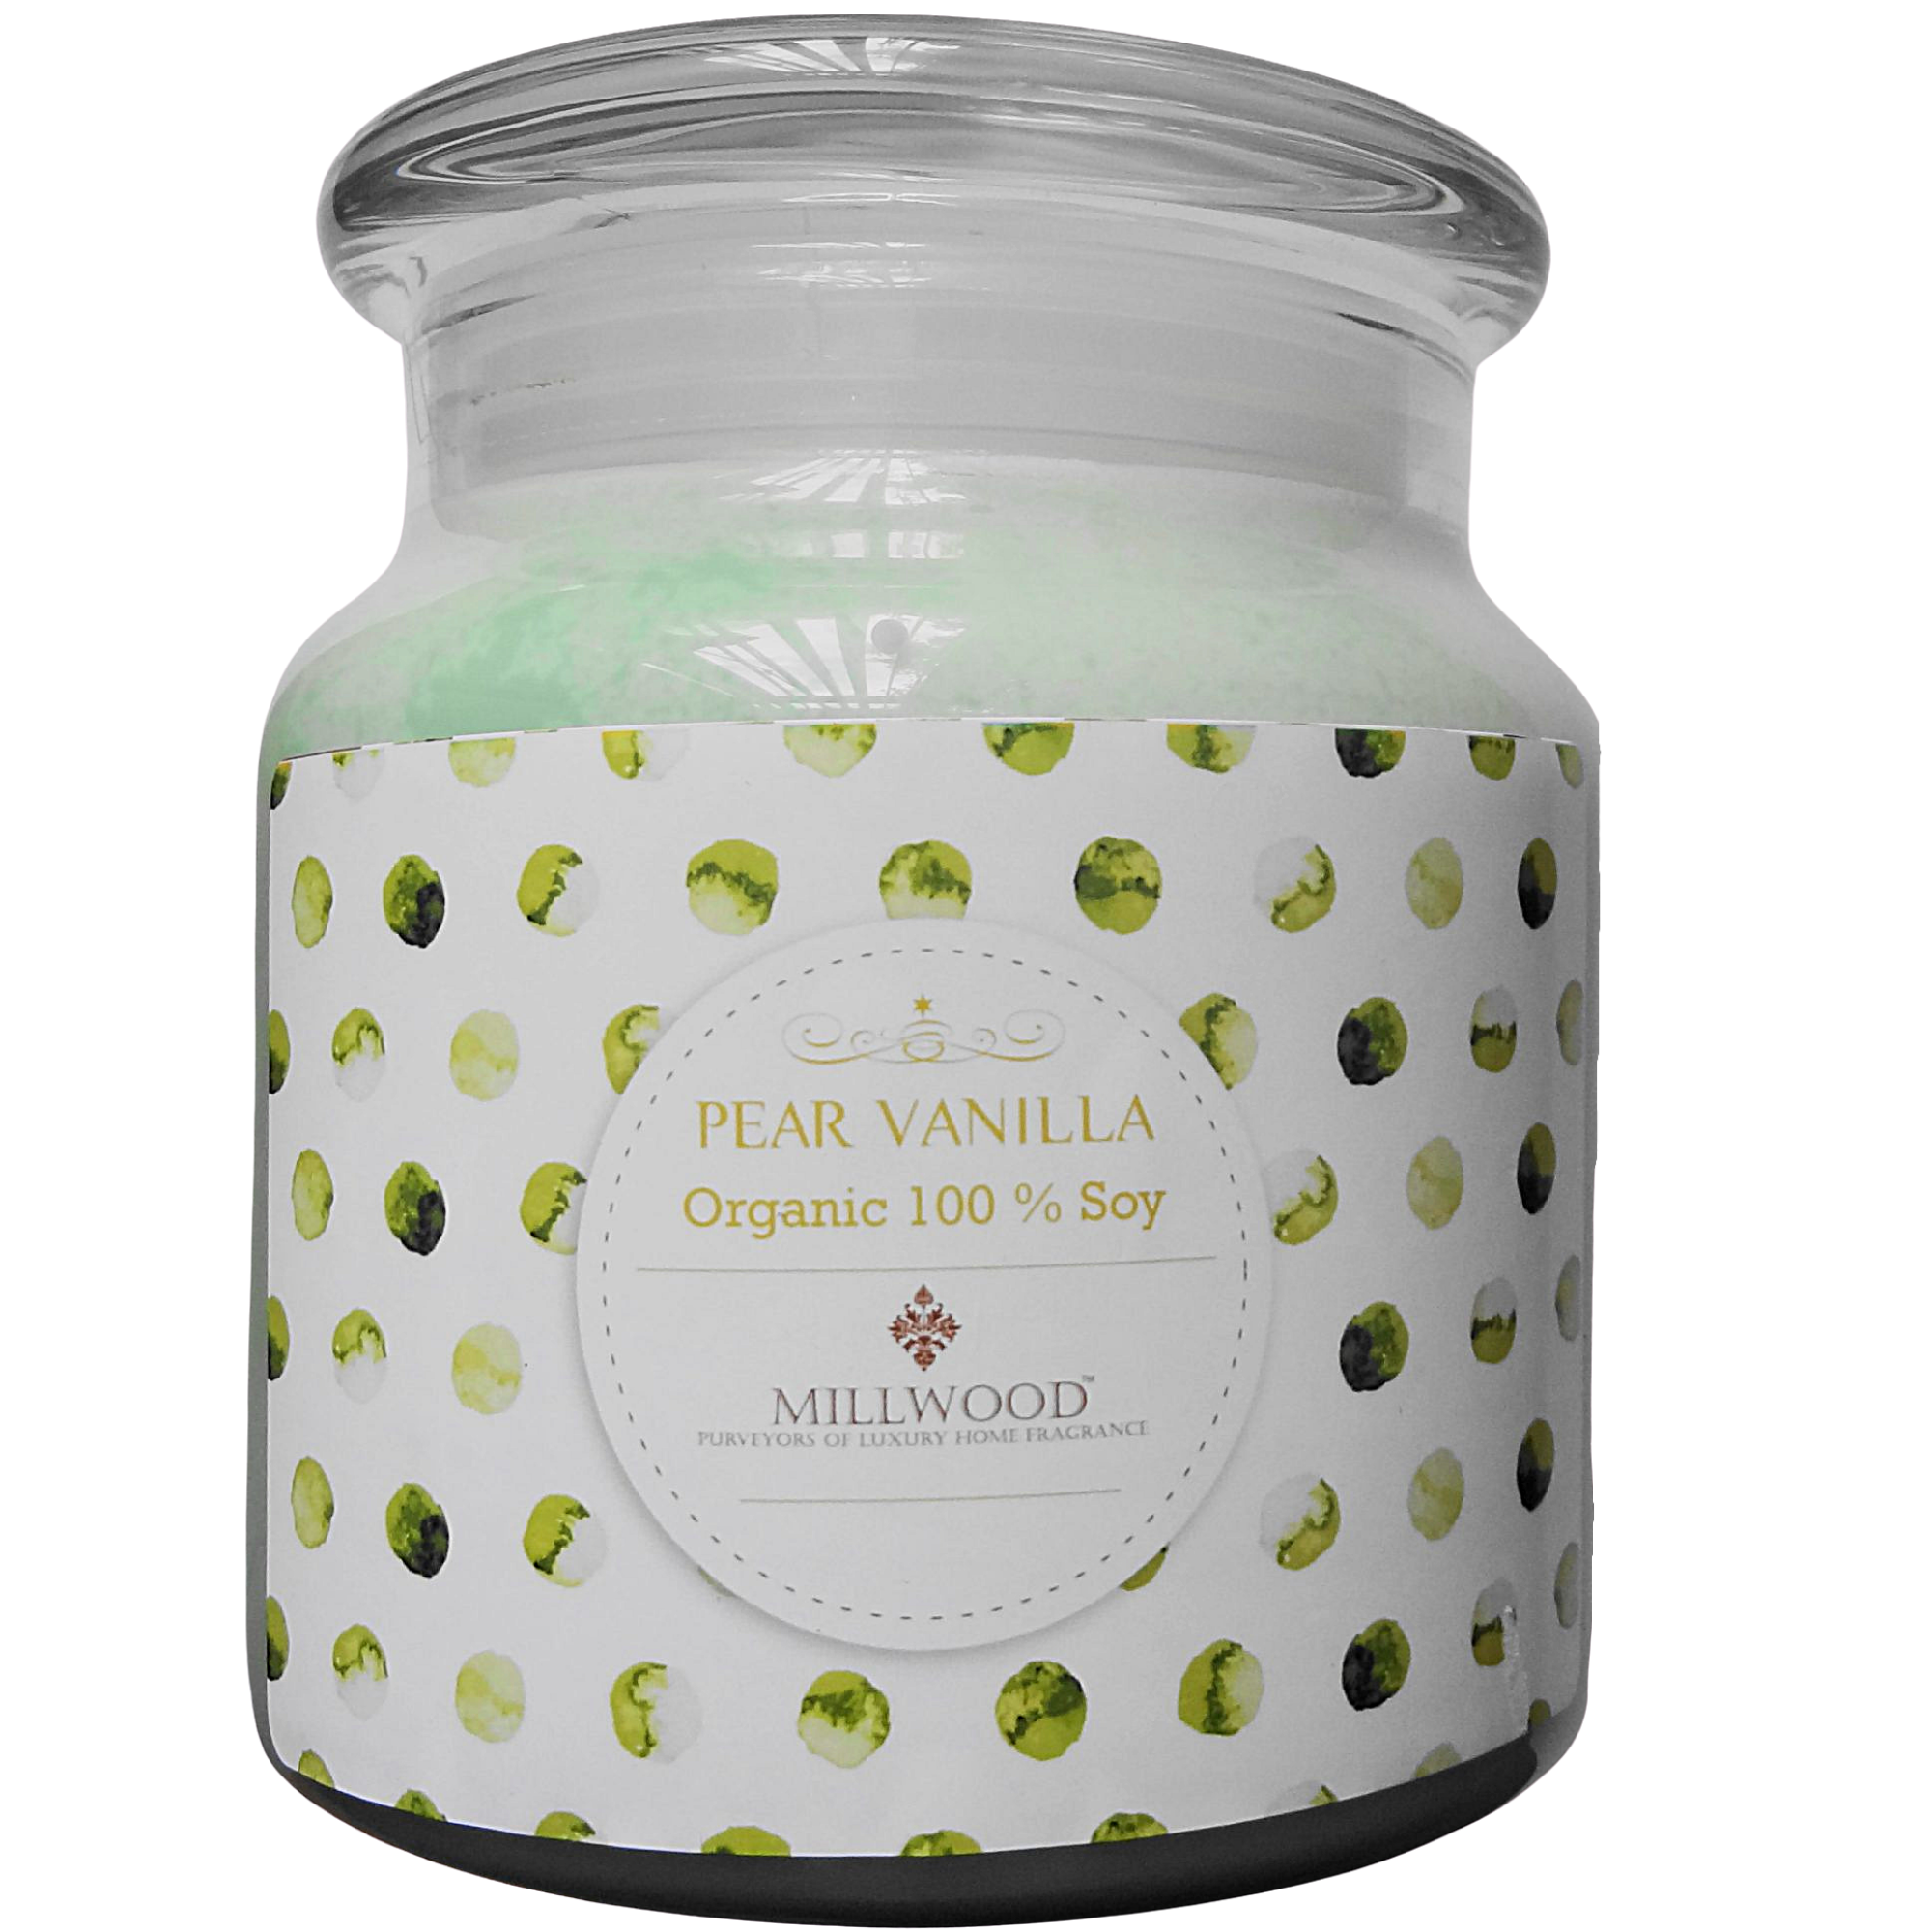 Pear Vanilla Soy Candle by Millwood Candles